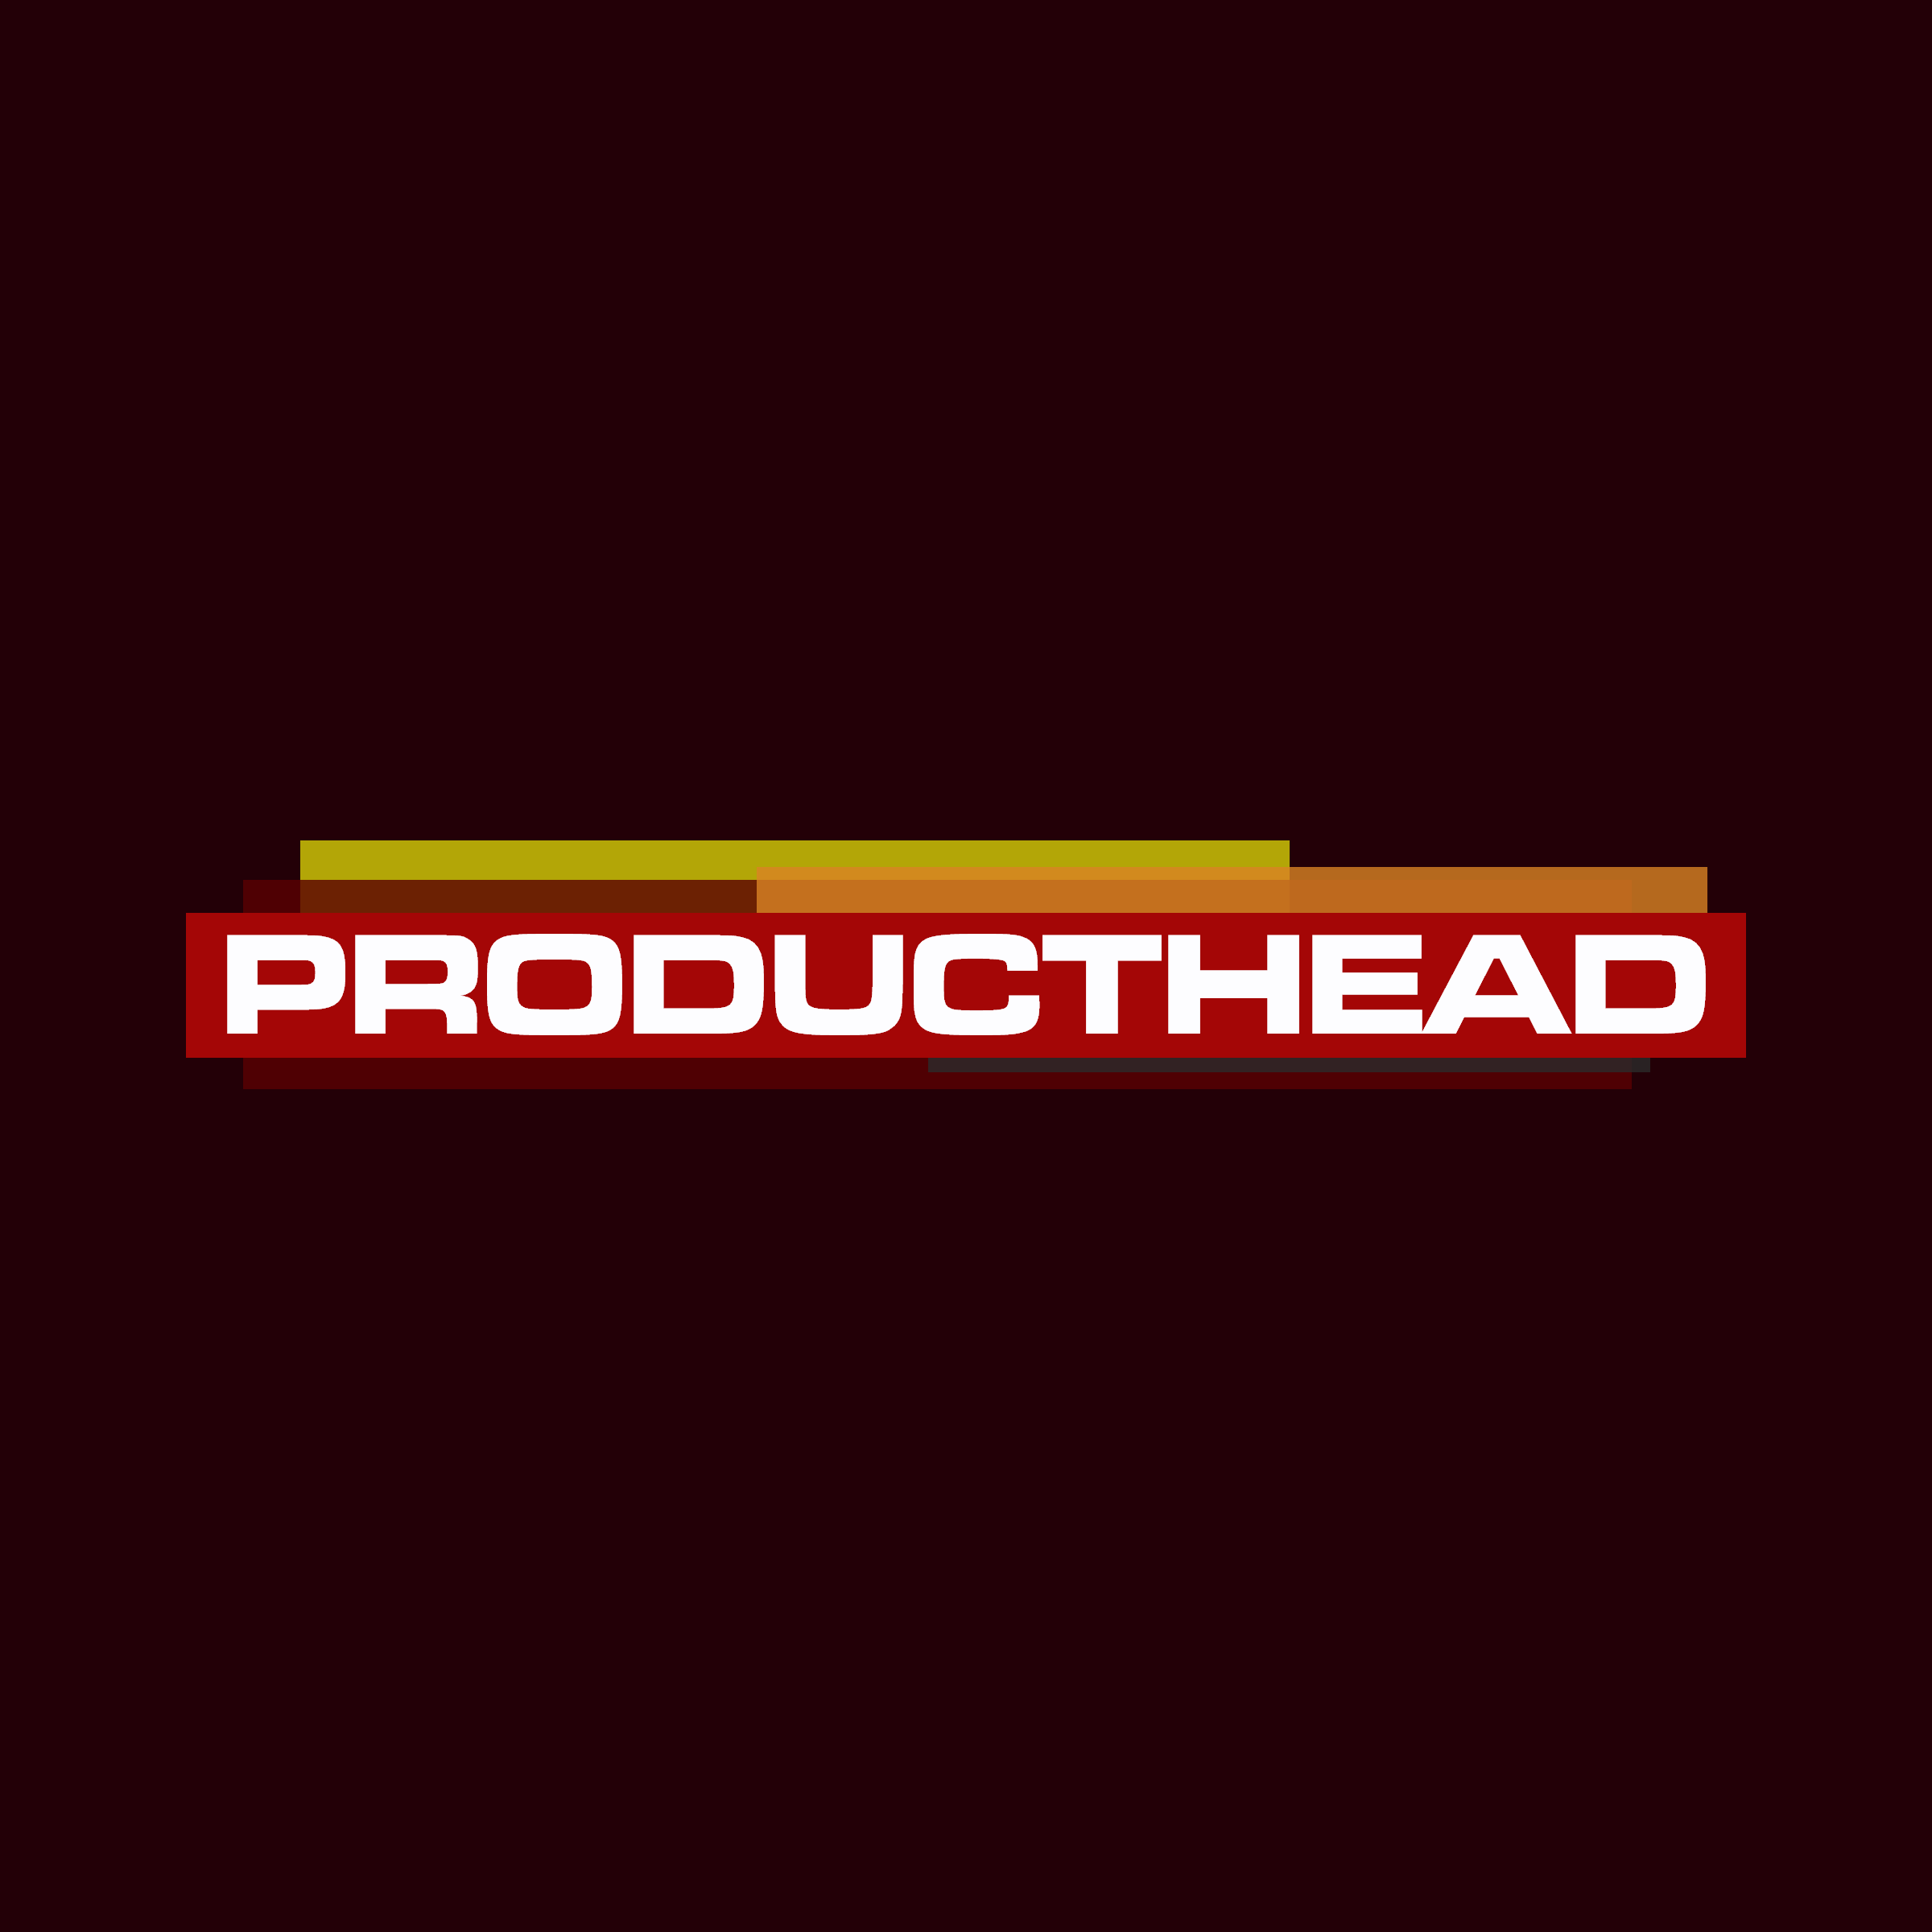 PRODUCTHEAD: Hieranarchy